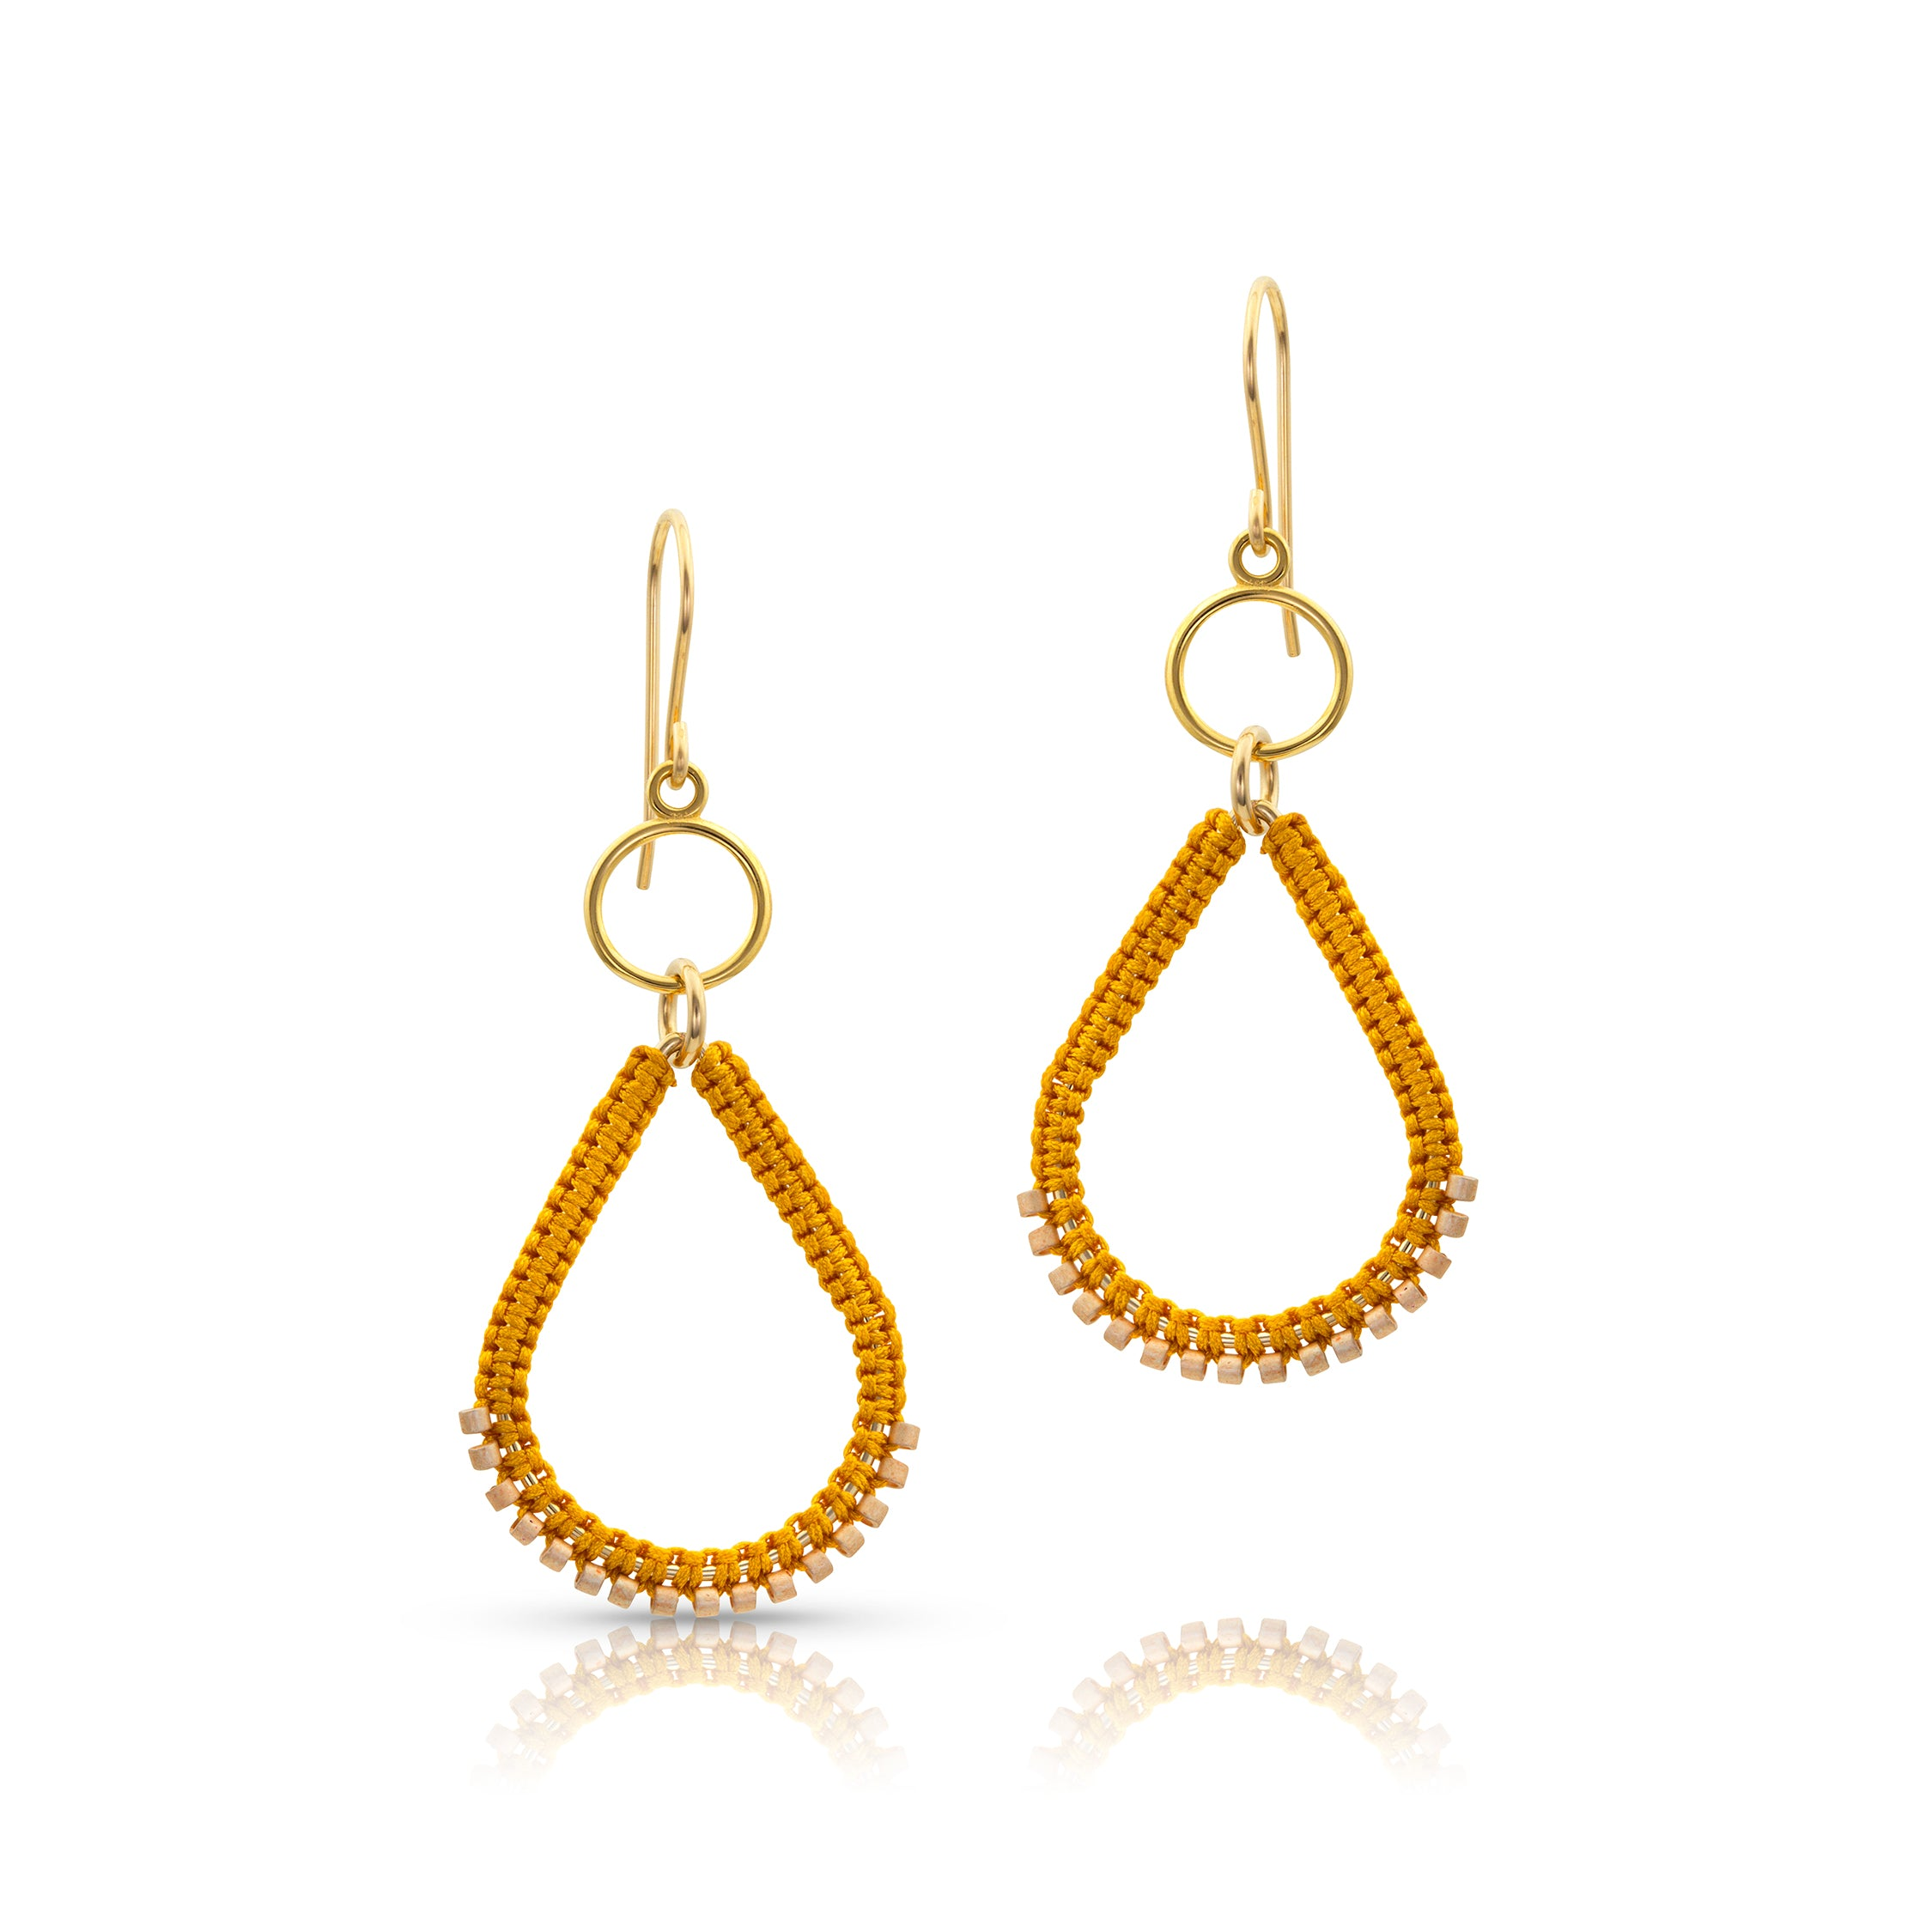 Gold filled components and a stylishly shaped teardrop enhanced with bead silk knotting create a beautiful combination of texture.